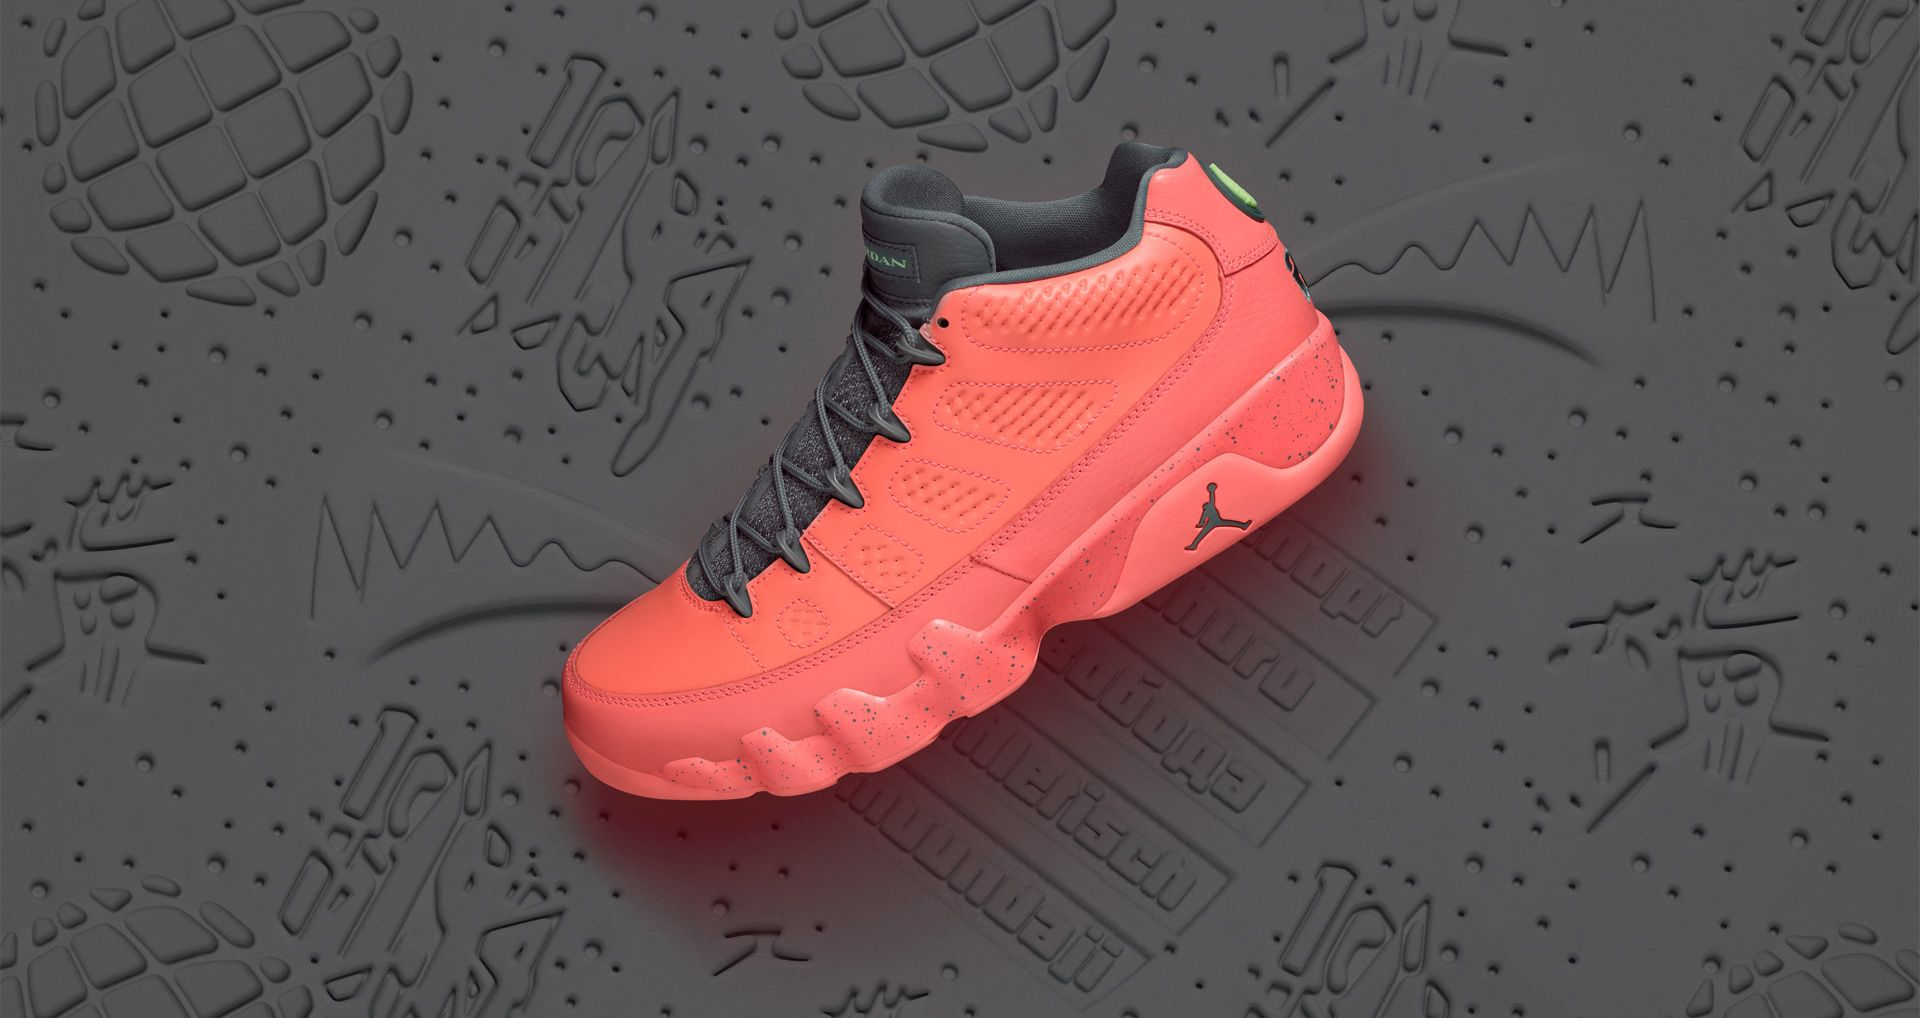 san francisco e9ce3 9f086 Air Jordan 9 Retro Low 'Bright Mango' Release Date. Nike⁠+ SNKRS